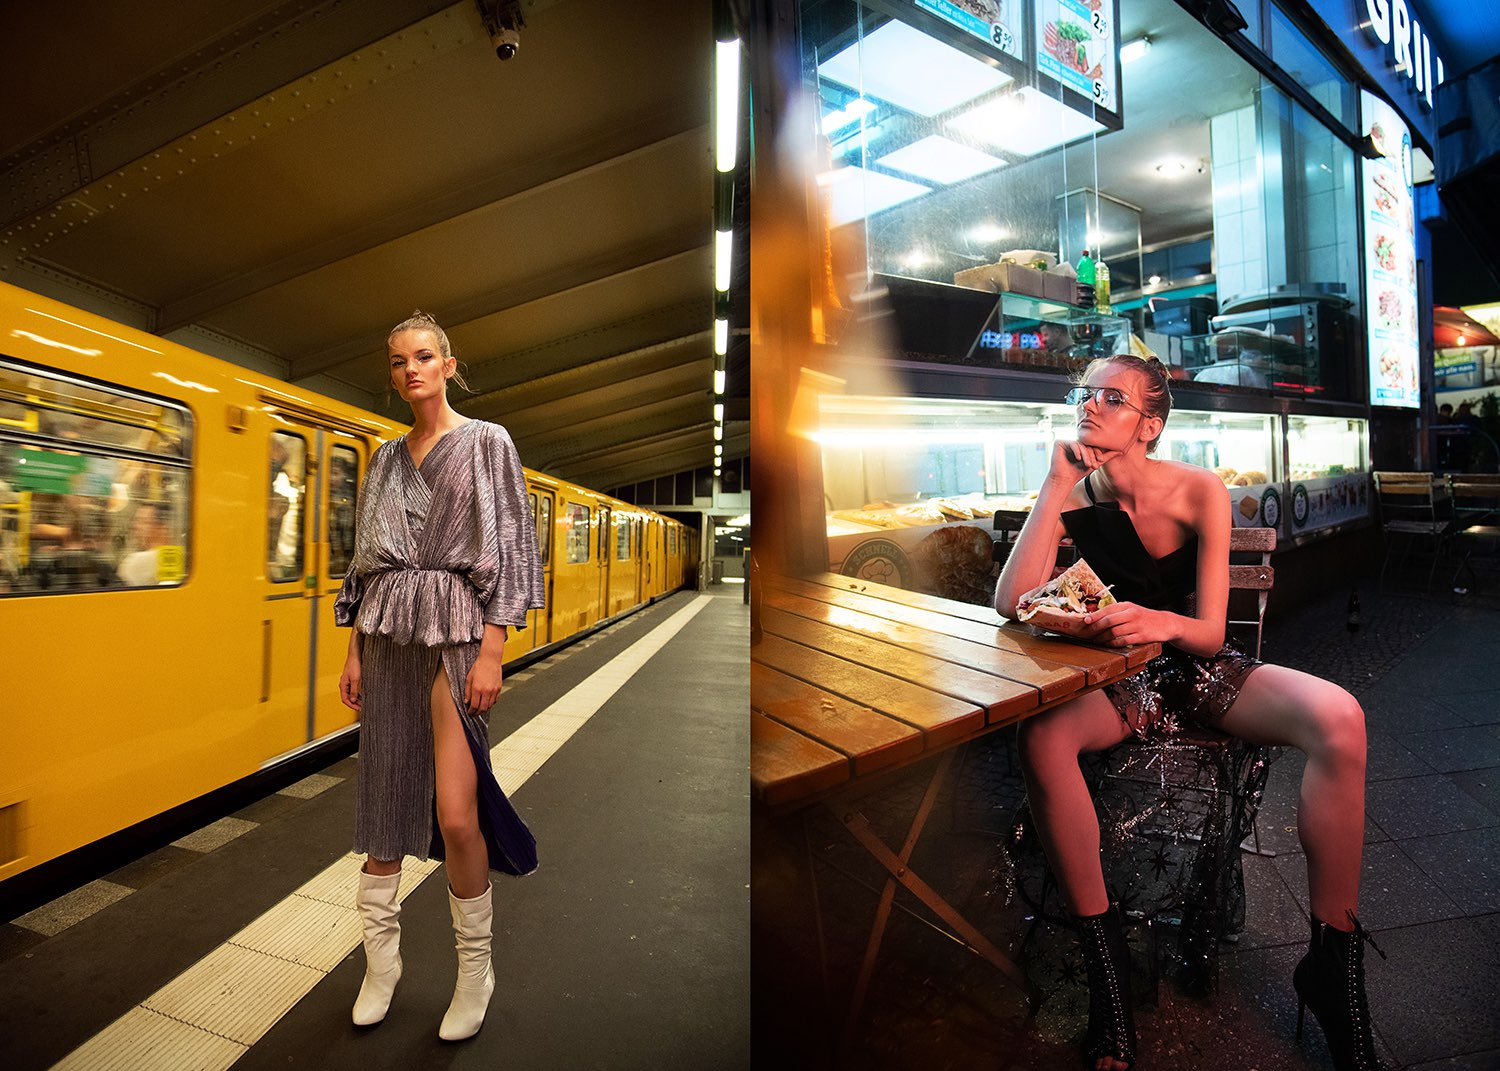 Hair, Nail, Make-up und Fashion styling portfolio / julia-jauner - styling-highres--ID490-2.jpeg?v=1586332130